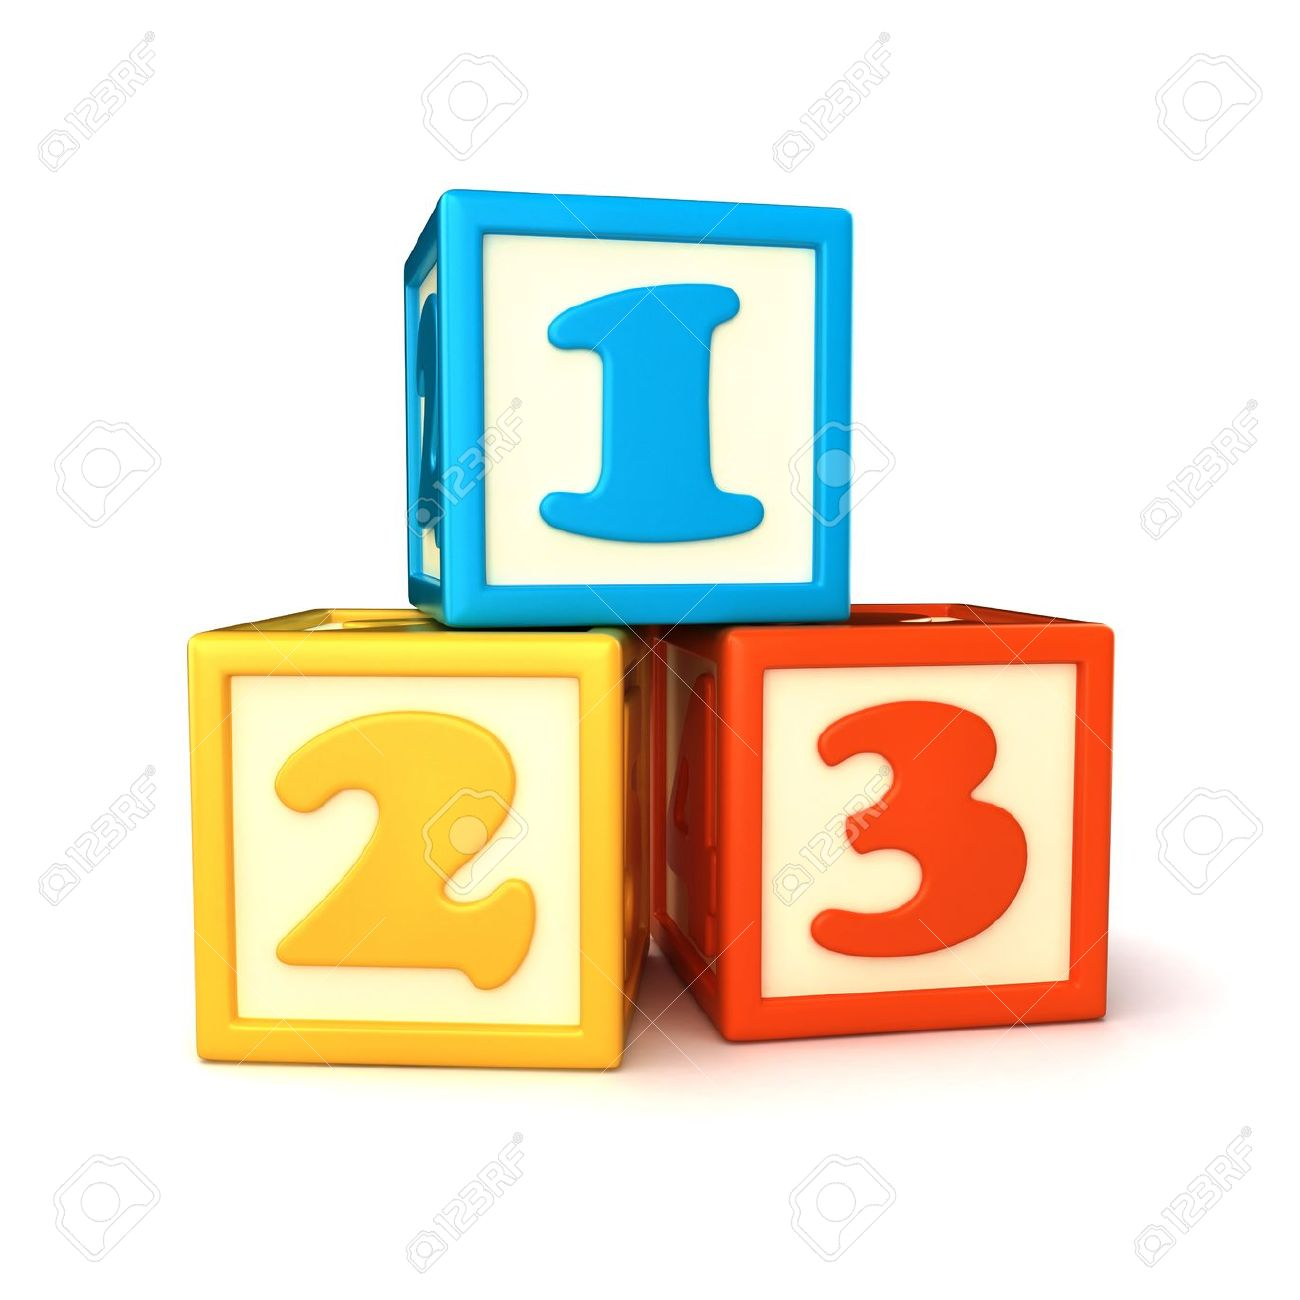 Number block clipart.